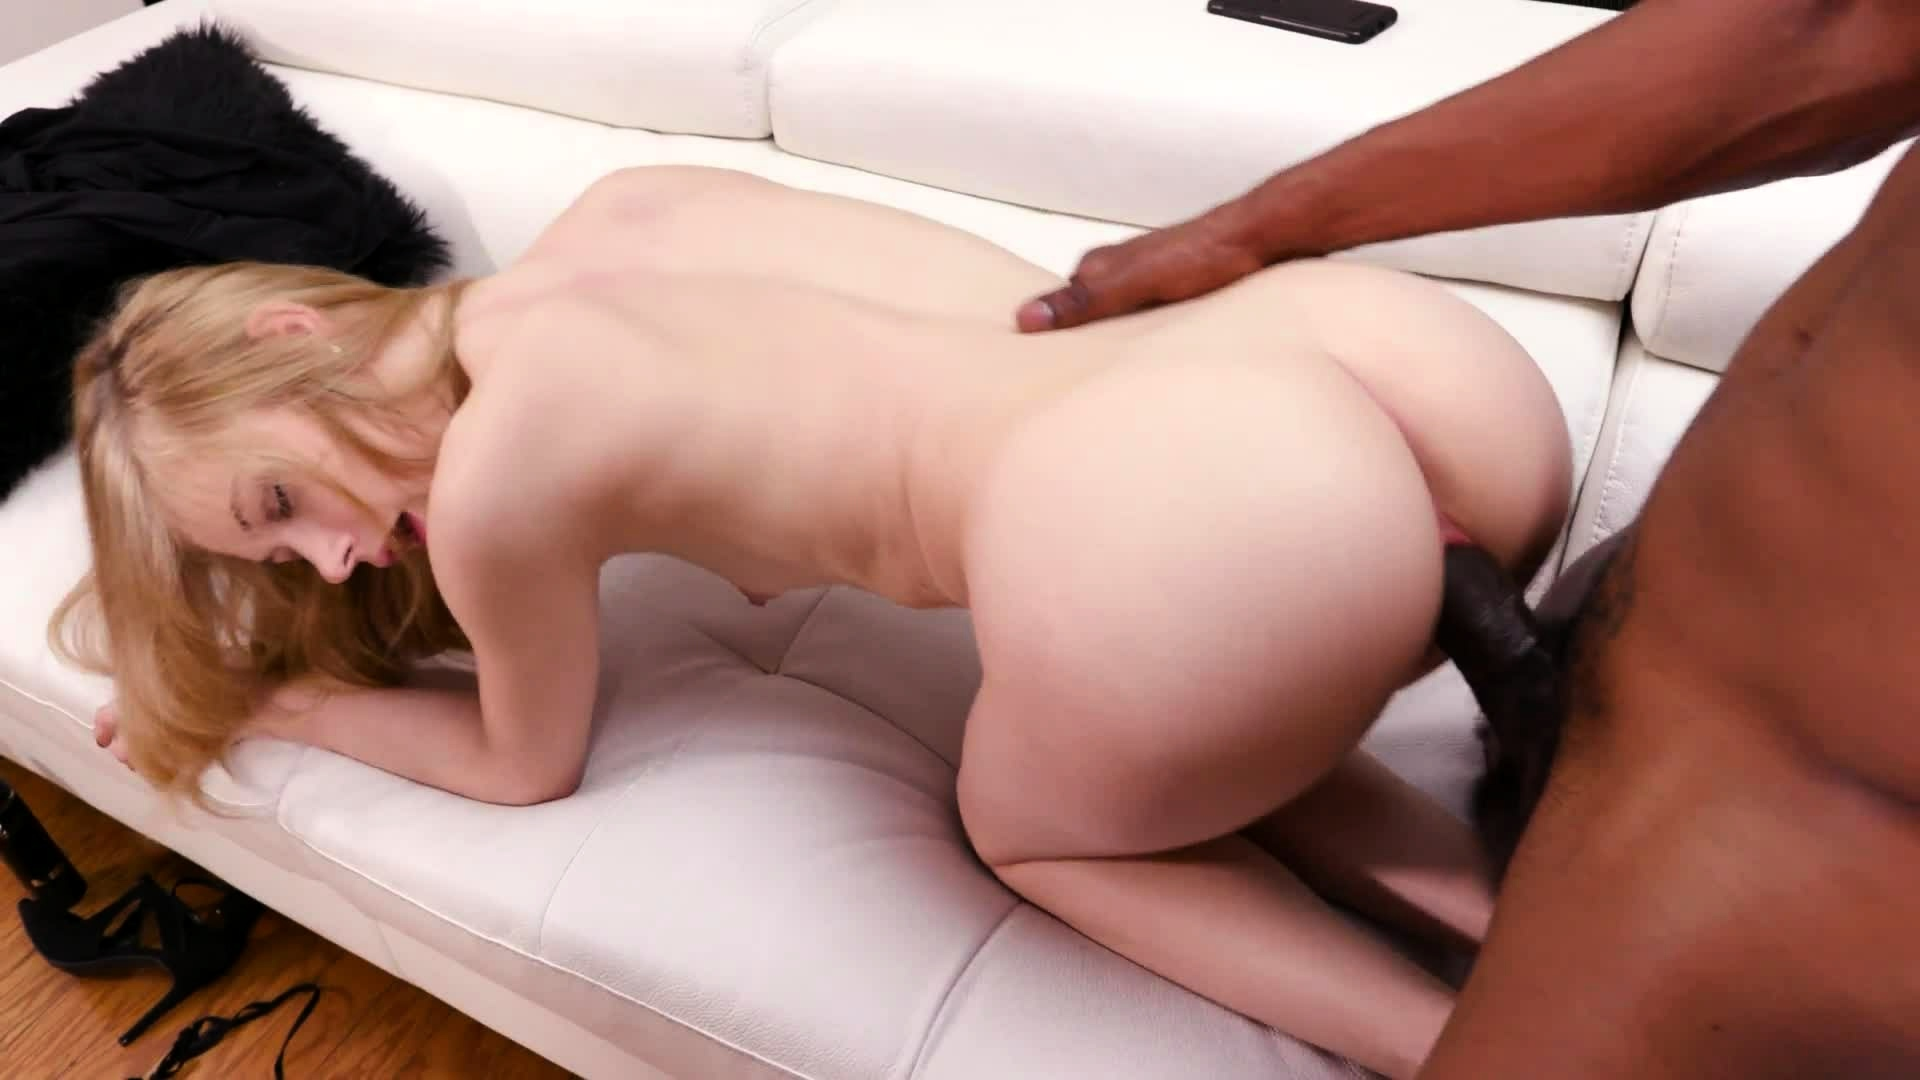 Big Mexican Dick Doggy Style